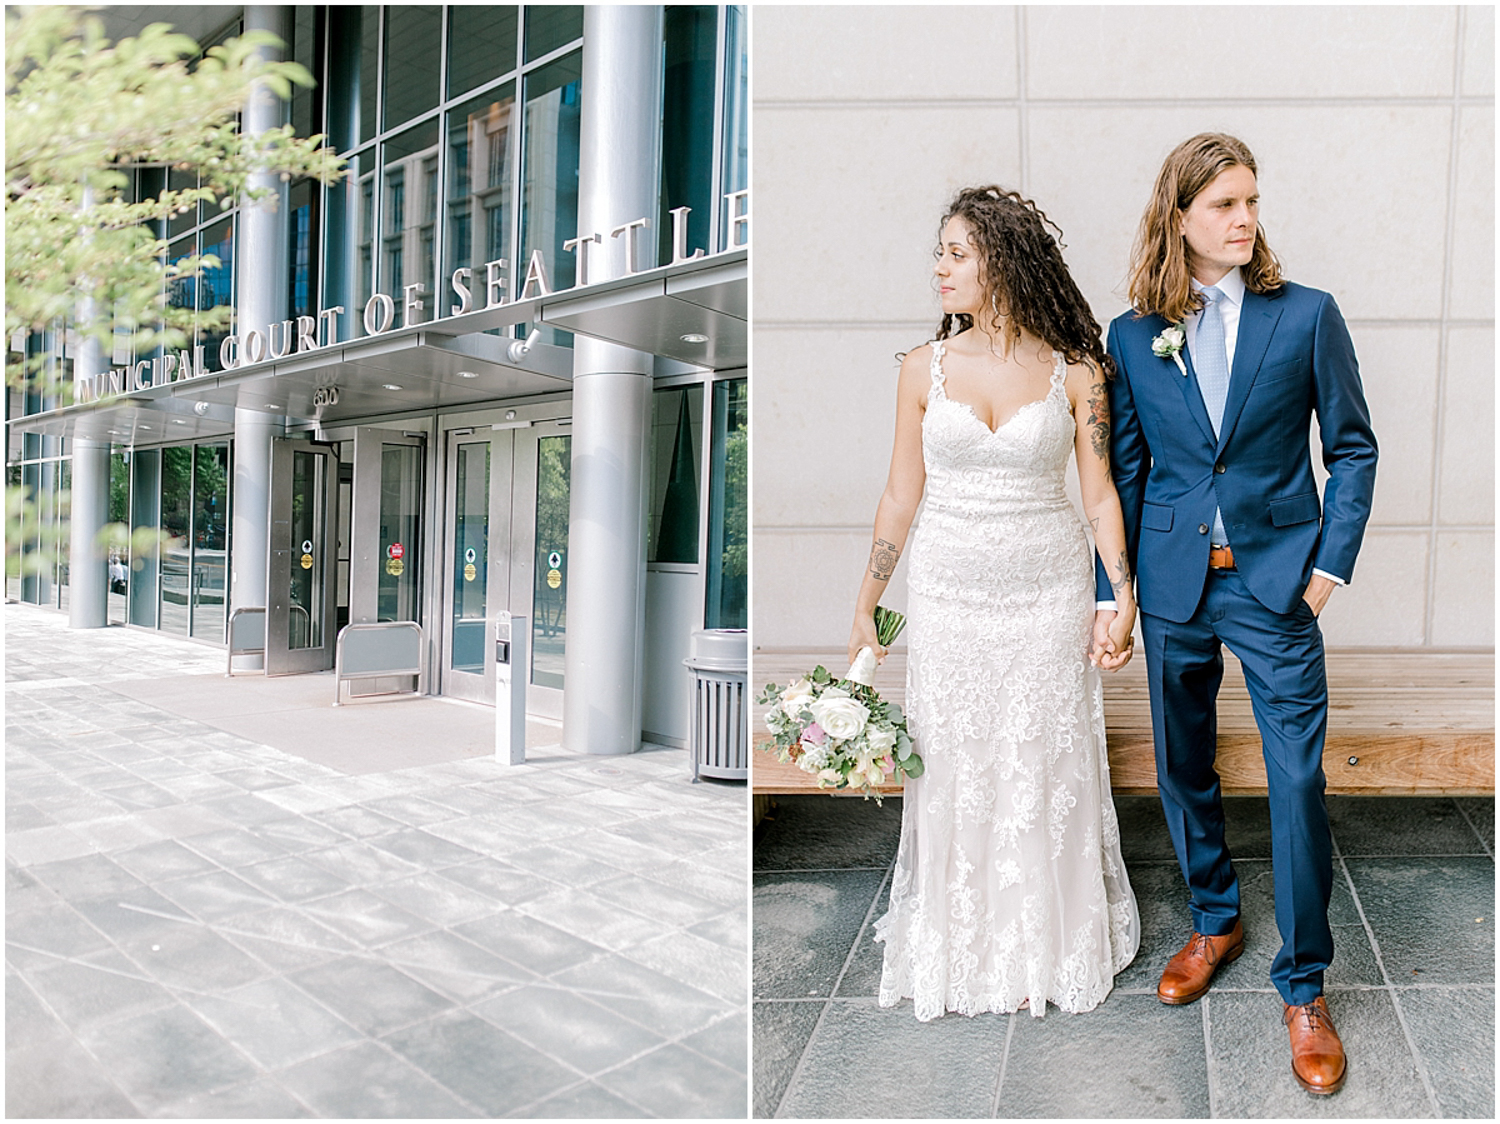 Seattle City Hall Courthouse Wedding Elopement | Seattle Wedding Photographer | Emma Rose Company | Downtown Seattle Wedding Inspiration | Pacific Northwest Elopement | Courthouse Elopement in the City-40.jpg